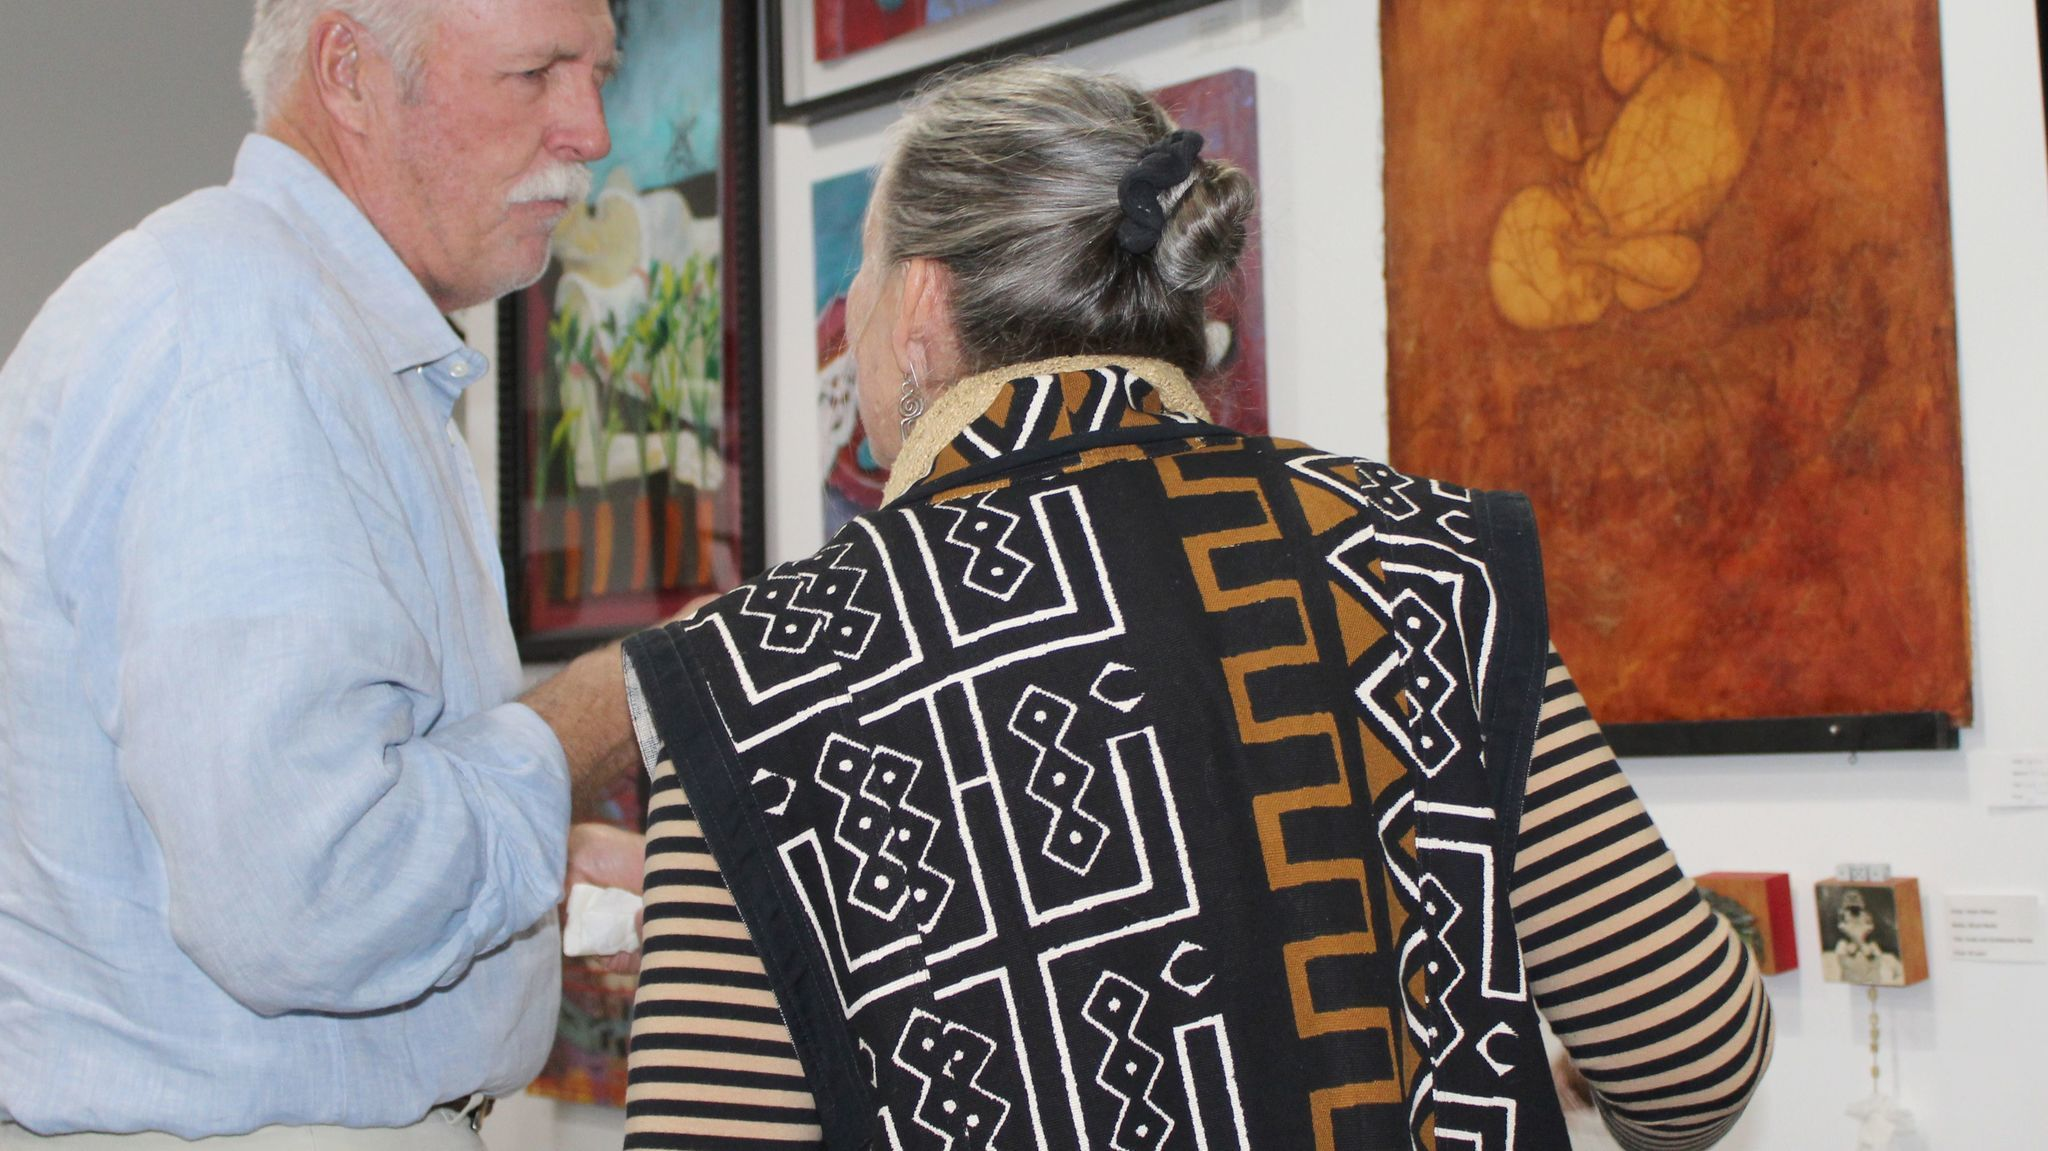 Artist David Begent, co-owner of 2Create Gallery, talks with artist Helen Wilson. Both are among the 25 artists featured in the 2017 Ramona Open Studios Tour April 8 and 9.